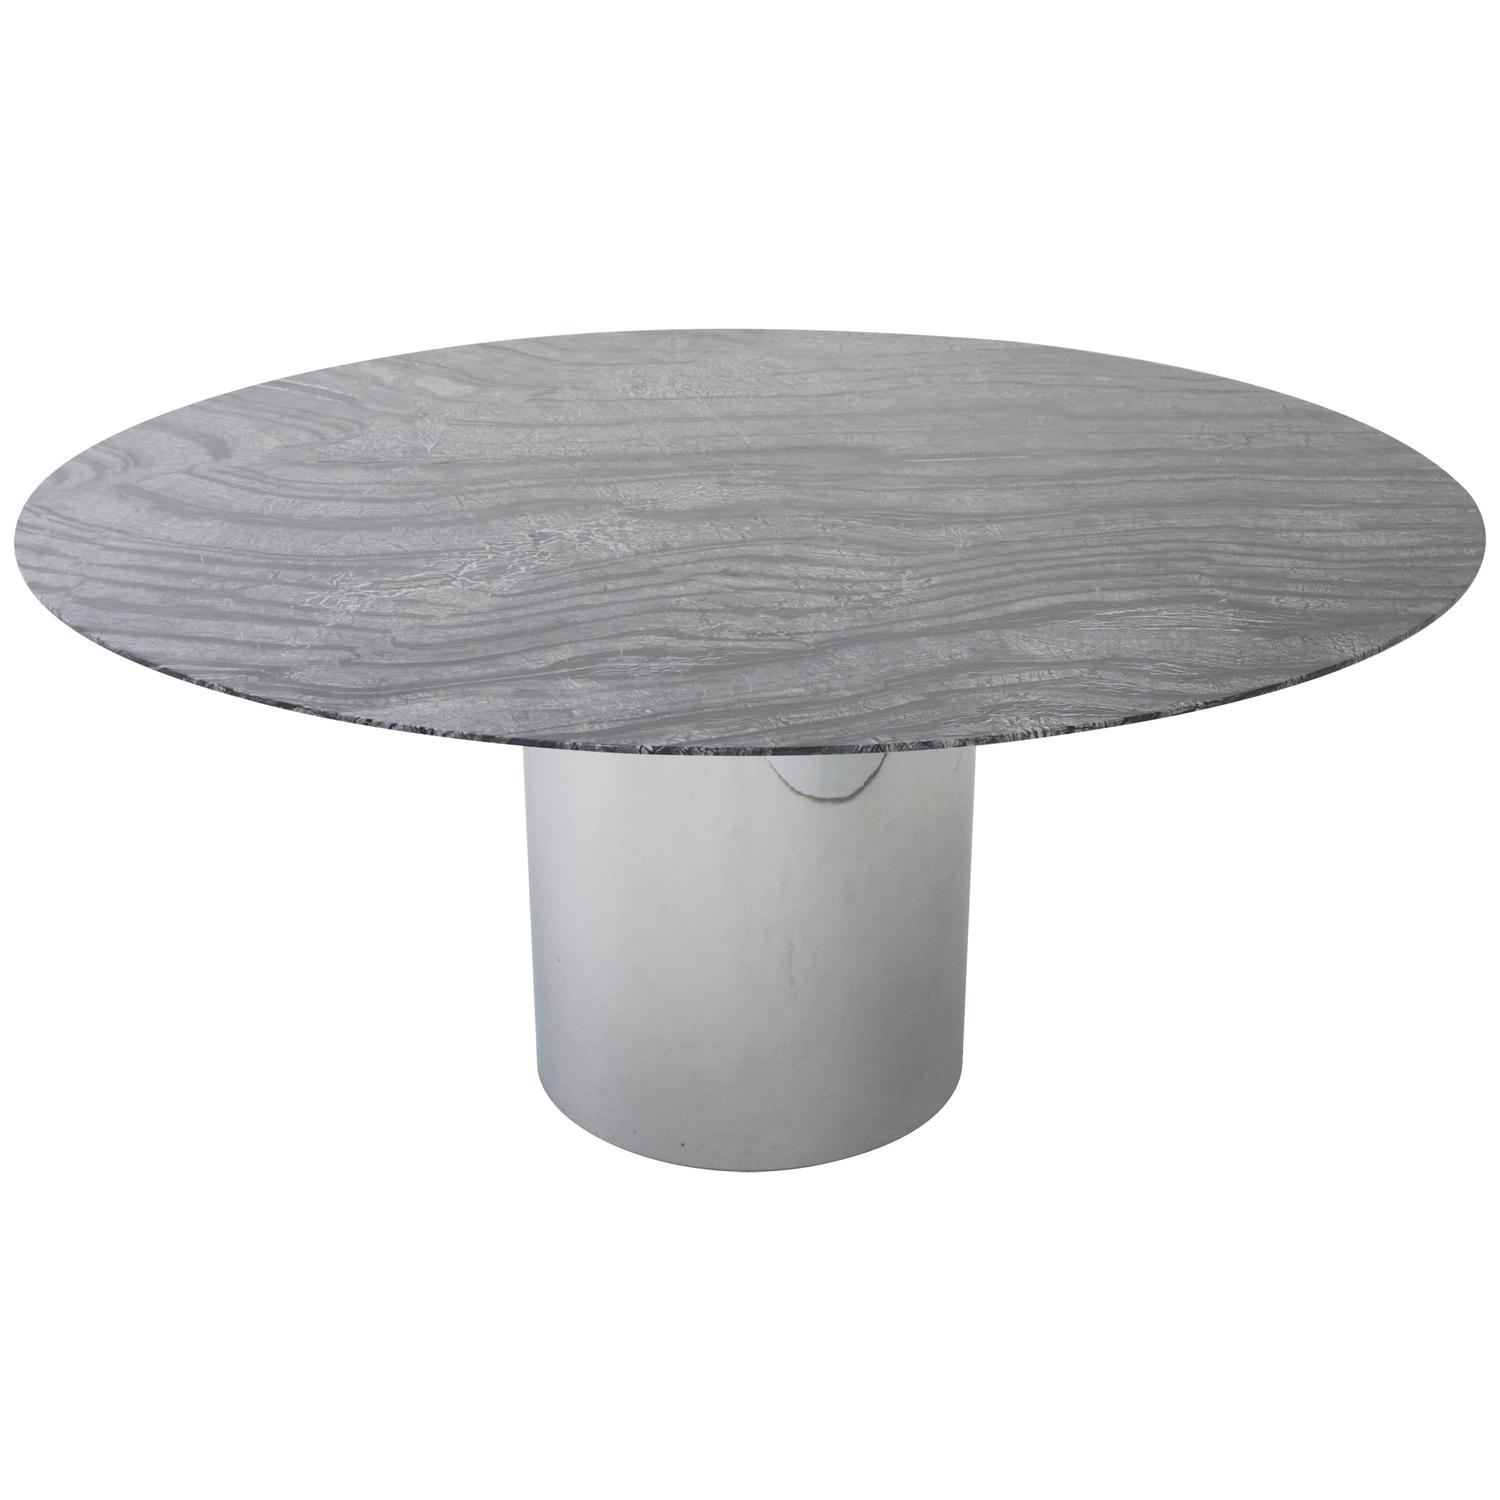 Round Marble Top Dining Table Knoll Dining Table With 60 Quot Round Marble Top At 1stdibs